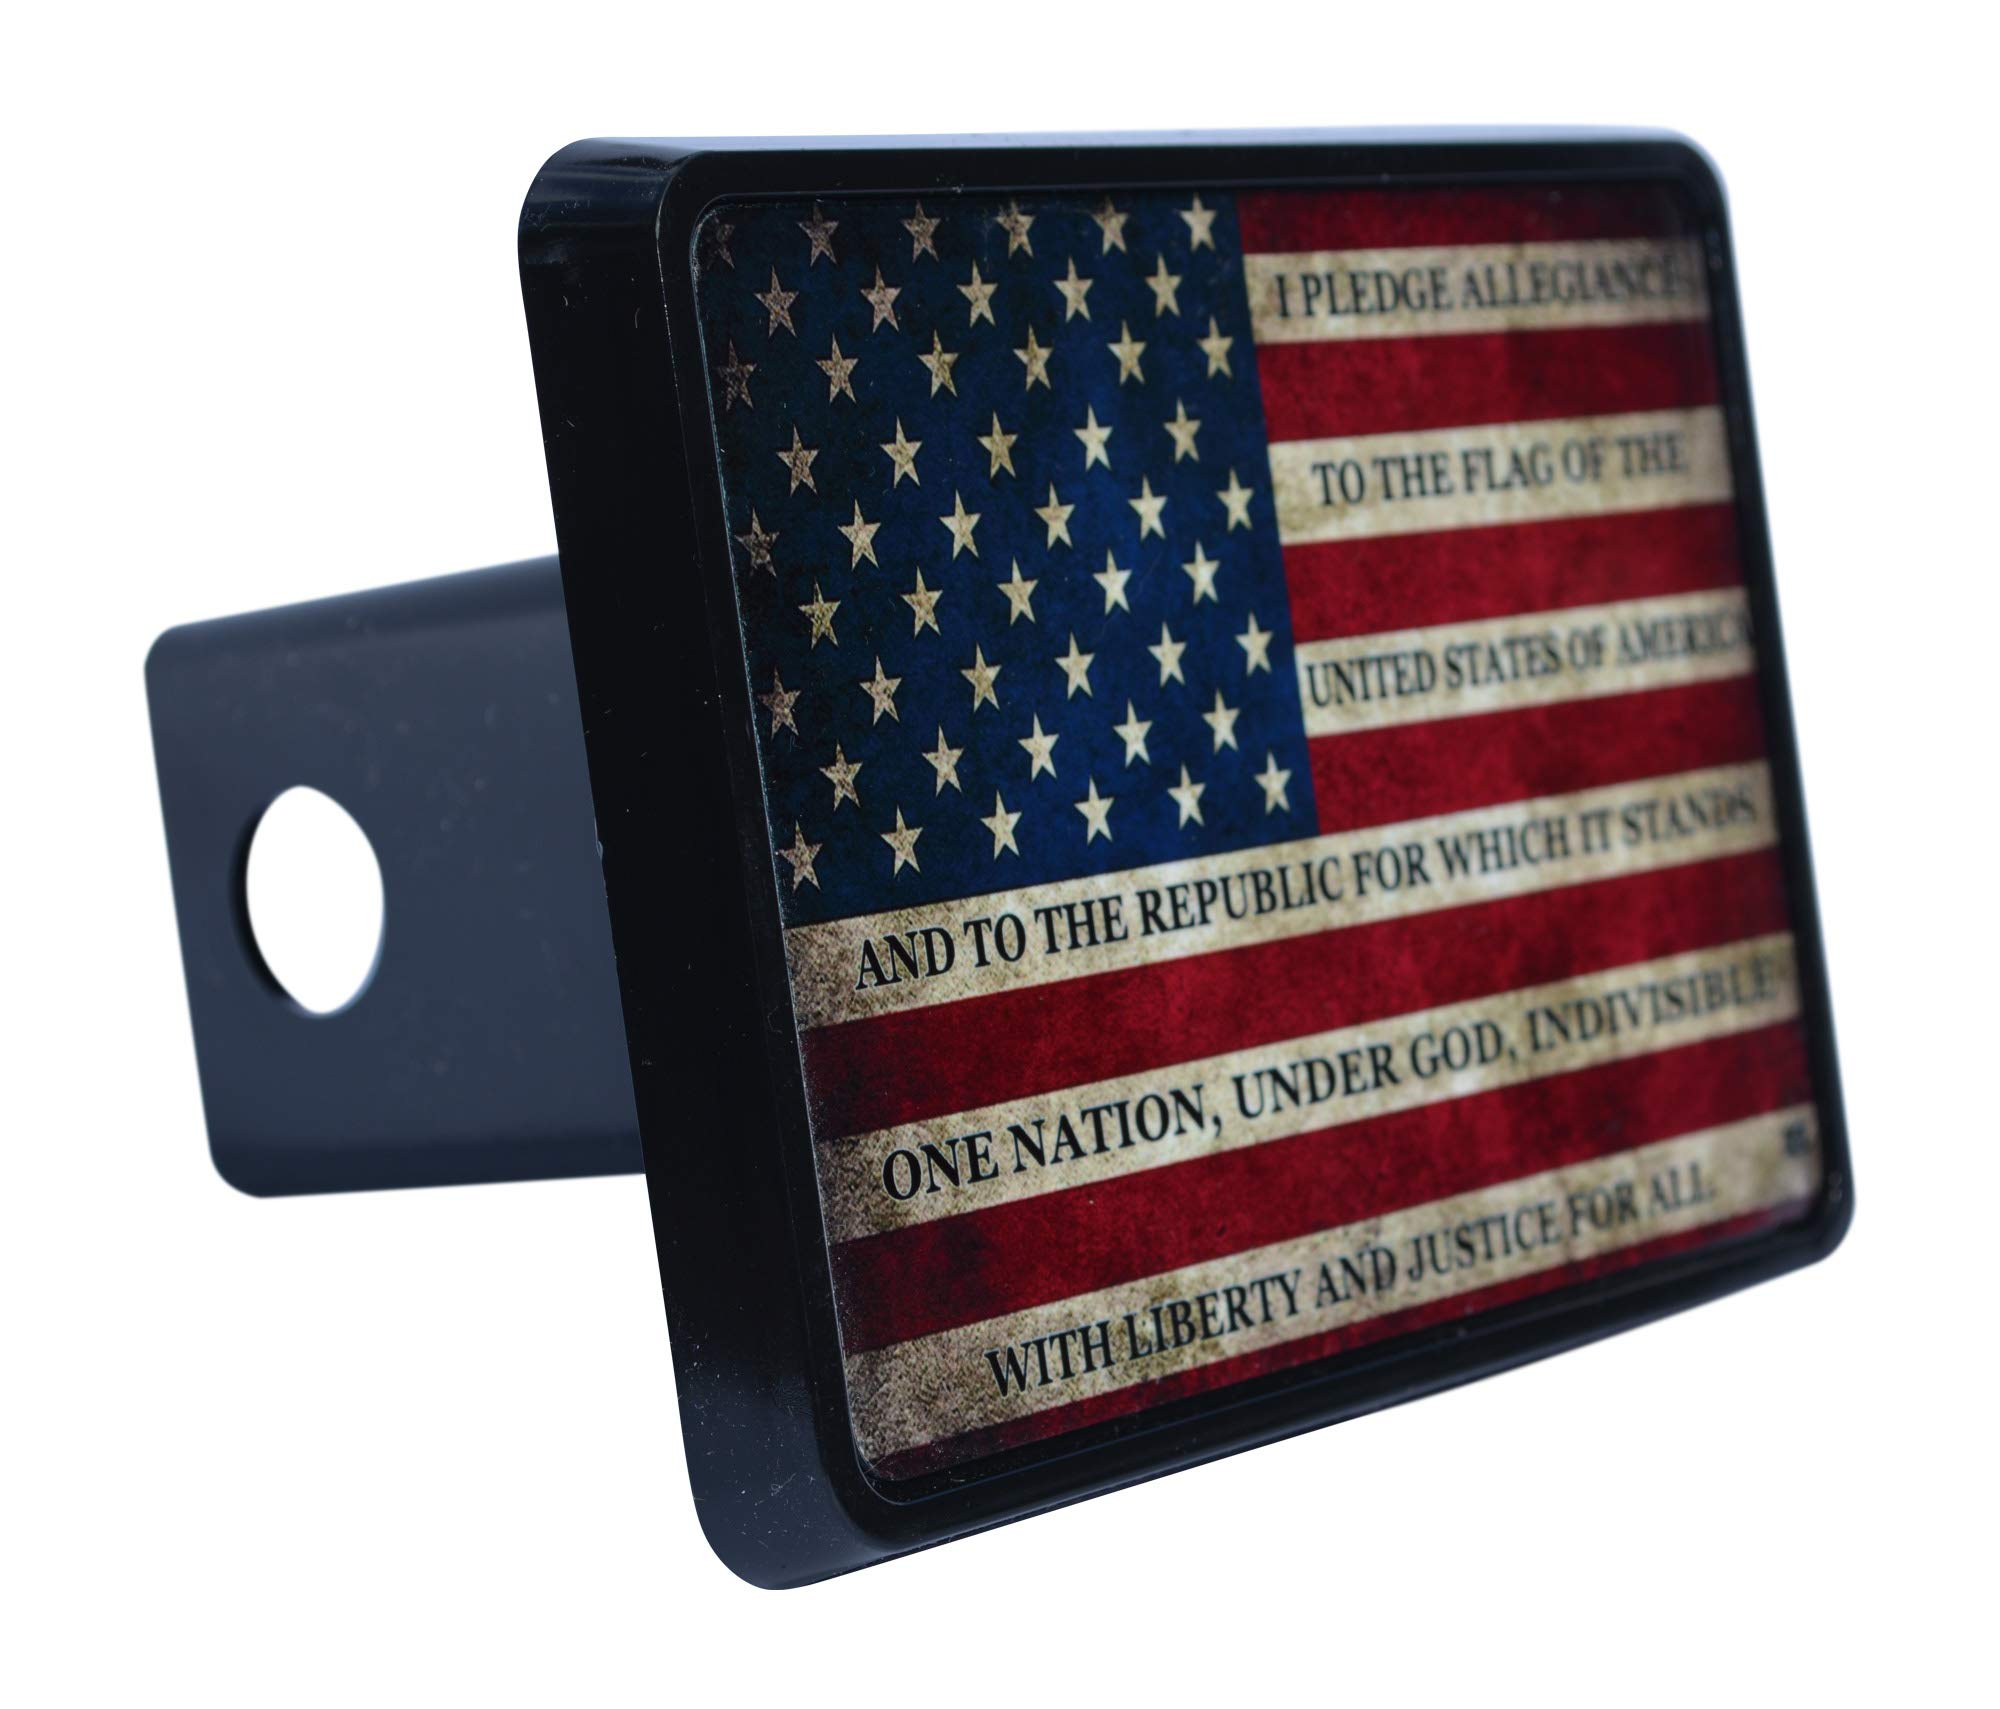 Rogue River Tactical USA American Flag Trailer Hitch Cover Plug US Patriotic Vintage Pledge of Allegiance by Rogue River Tactical